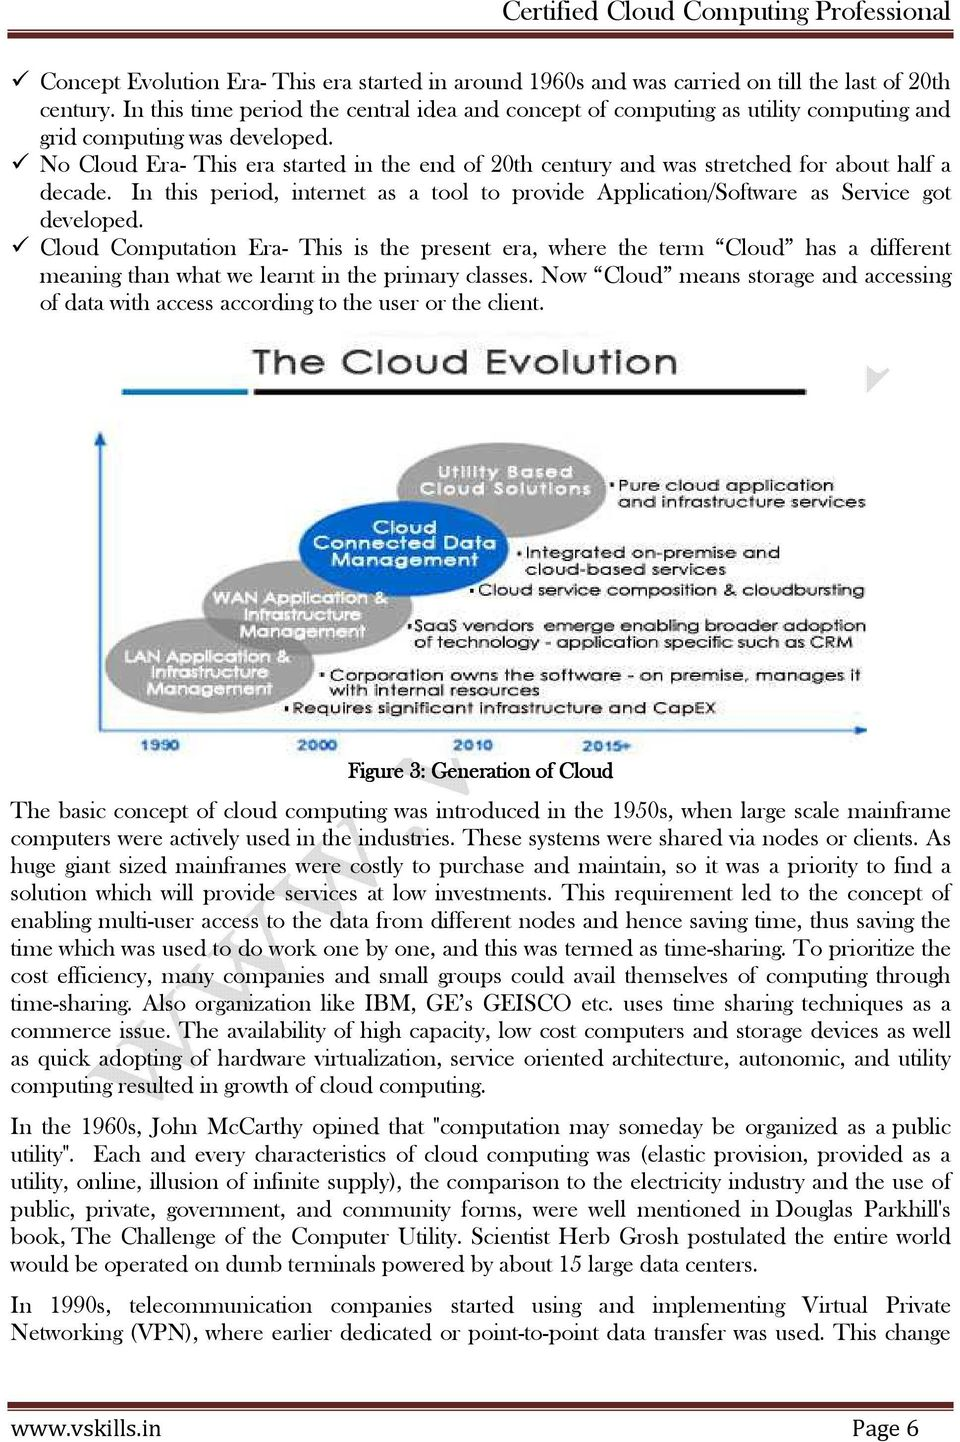 No Cloud Era- This era started in the end of 20th century and was stretched for about half a decade. In this period, internet as a tool to provide Application/Software as Service got developed.